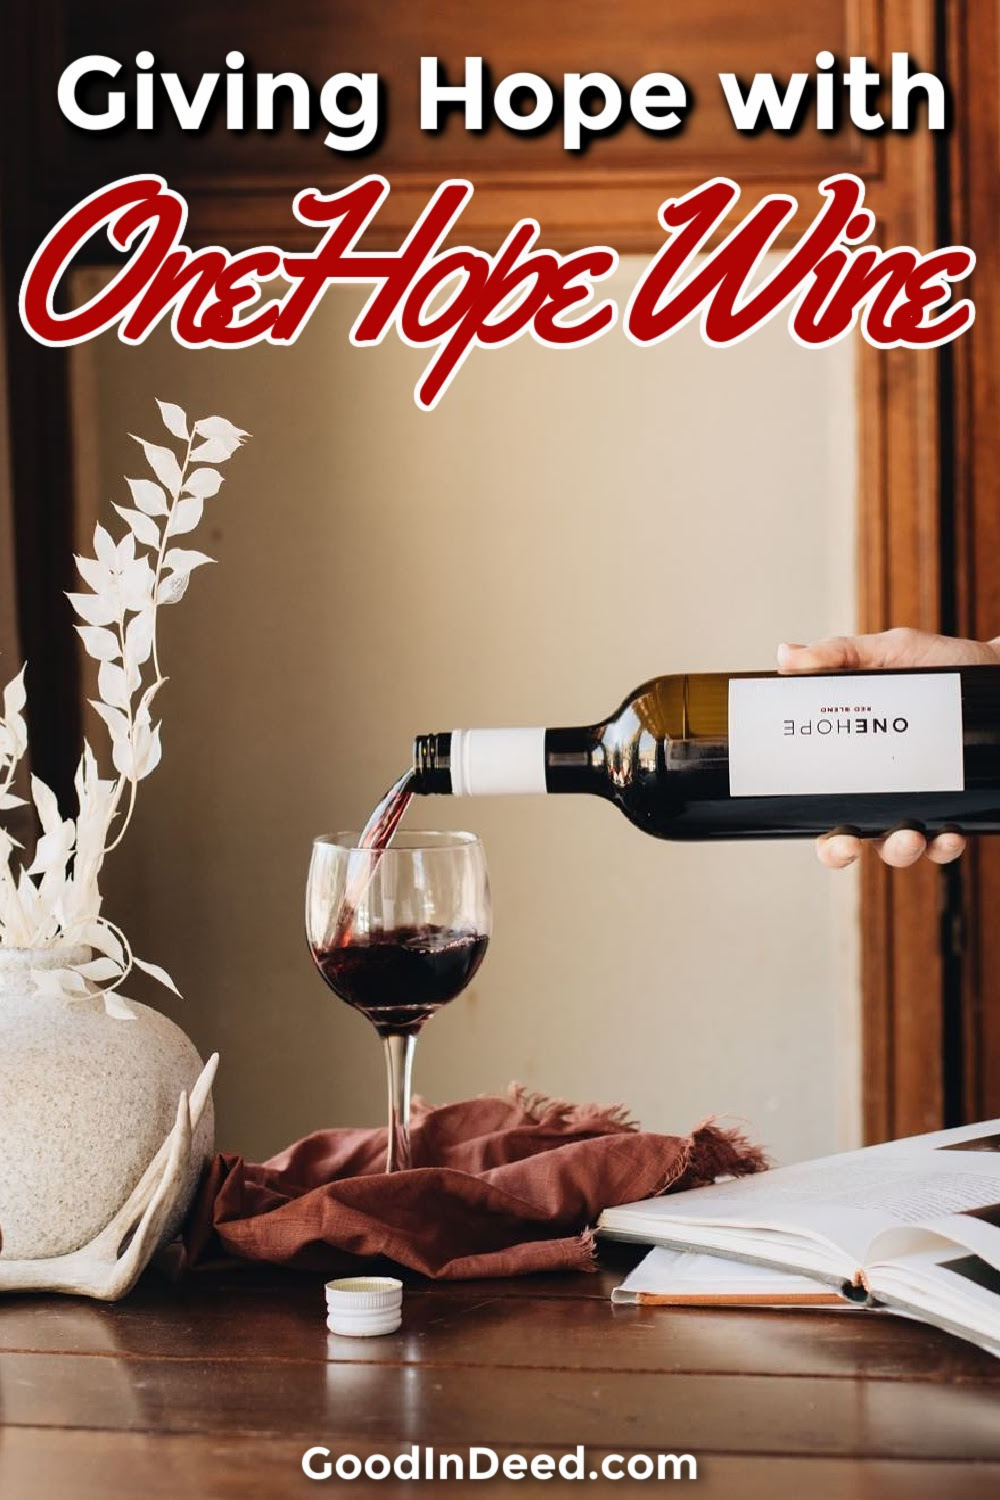 OneHope Wine gives us all the opportunity to make a difference, to give hope to those in need all while enjoying a glass of wine.